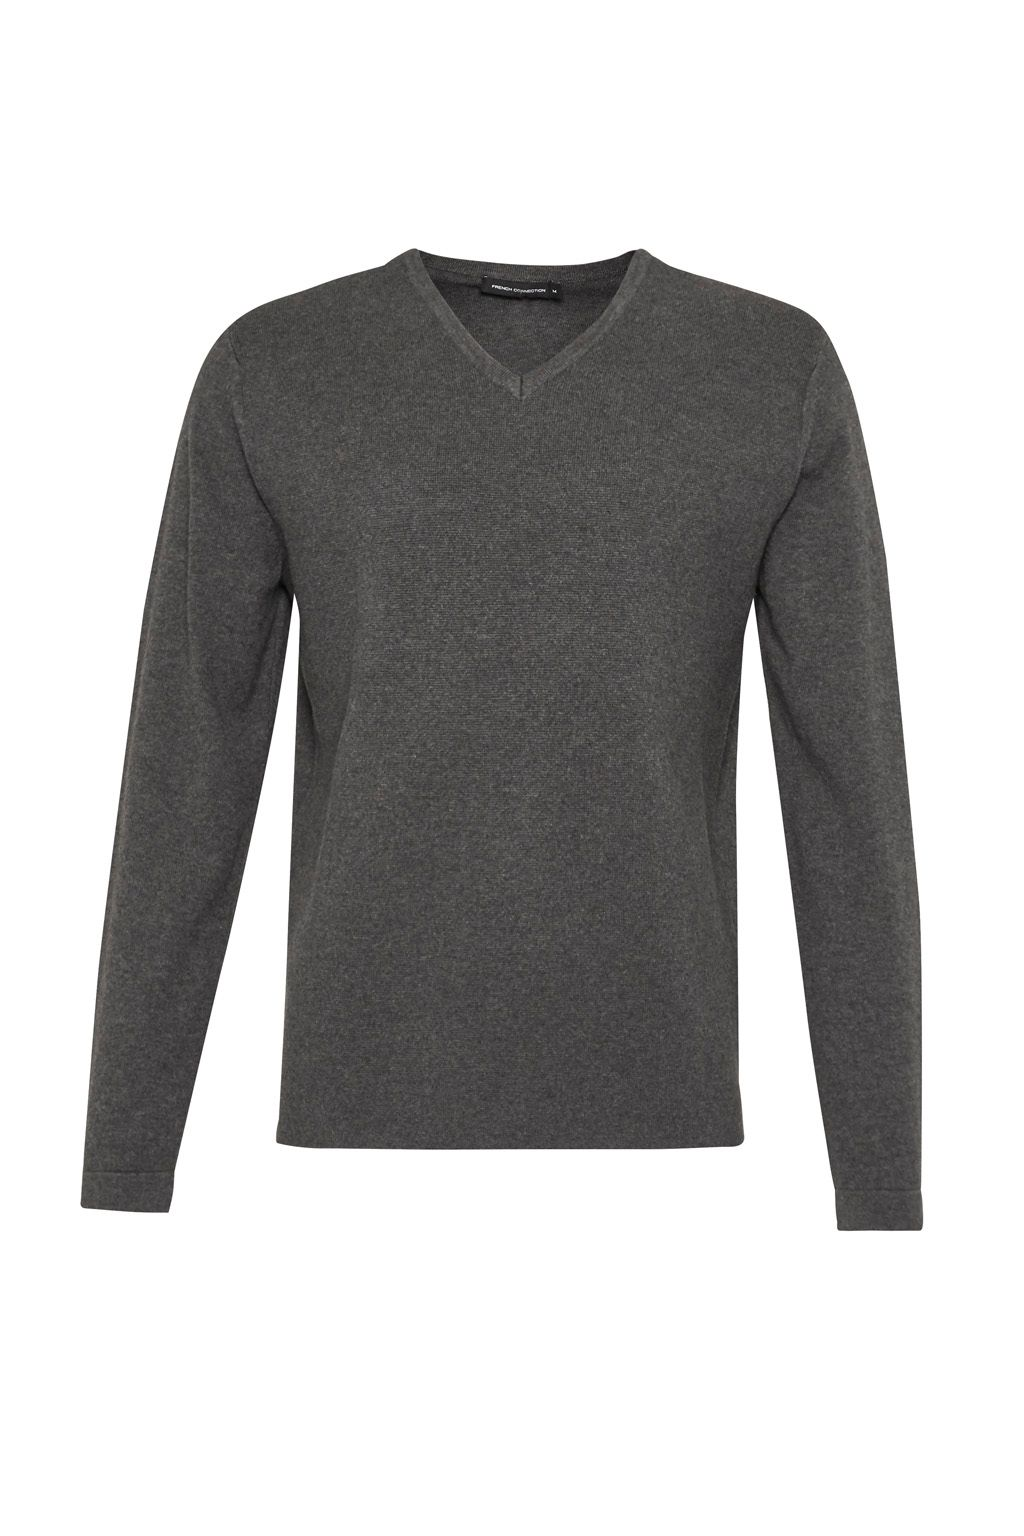 Men's French Connection Milano Front Cotton V Neck Jumper, Charcoal